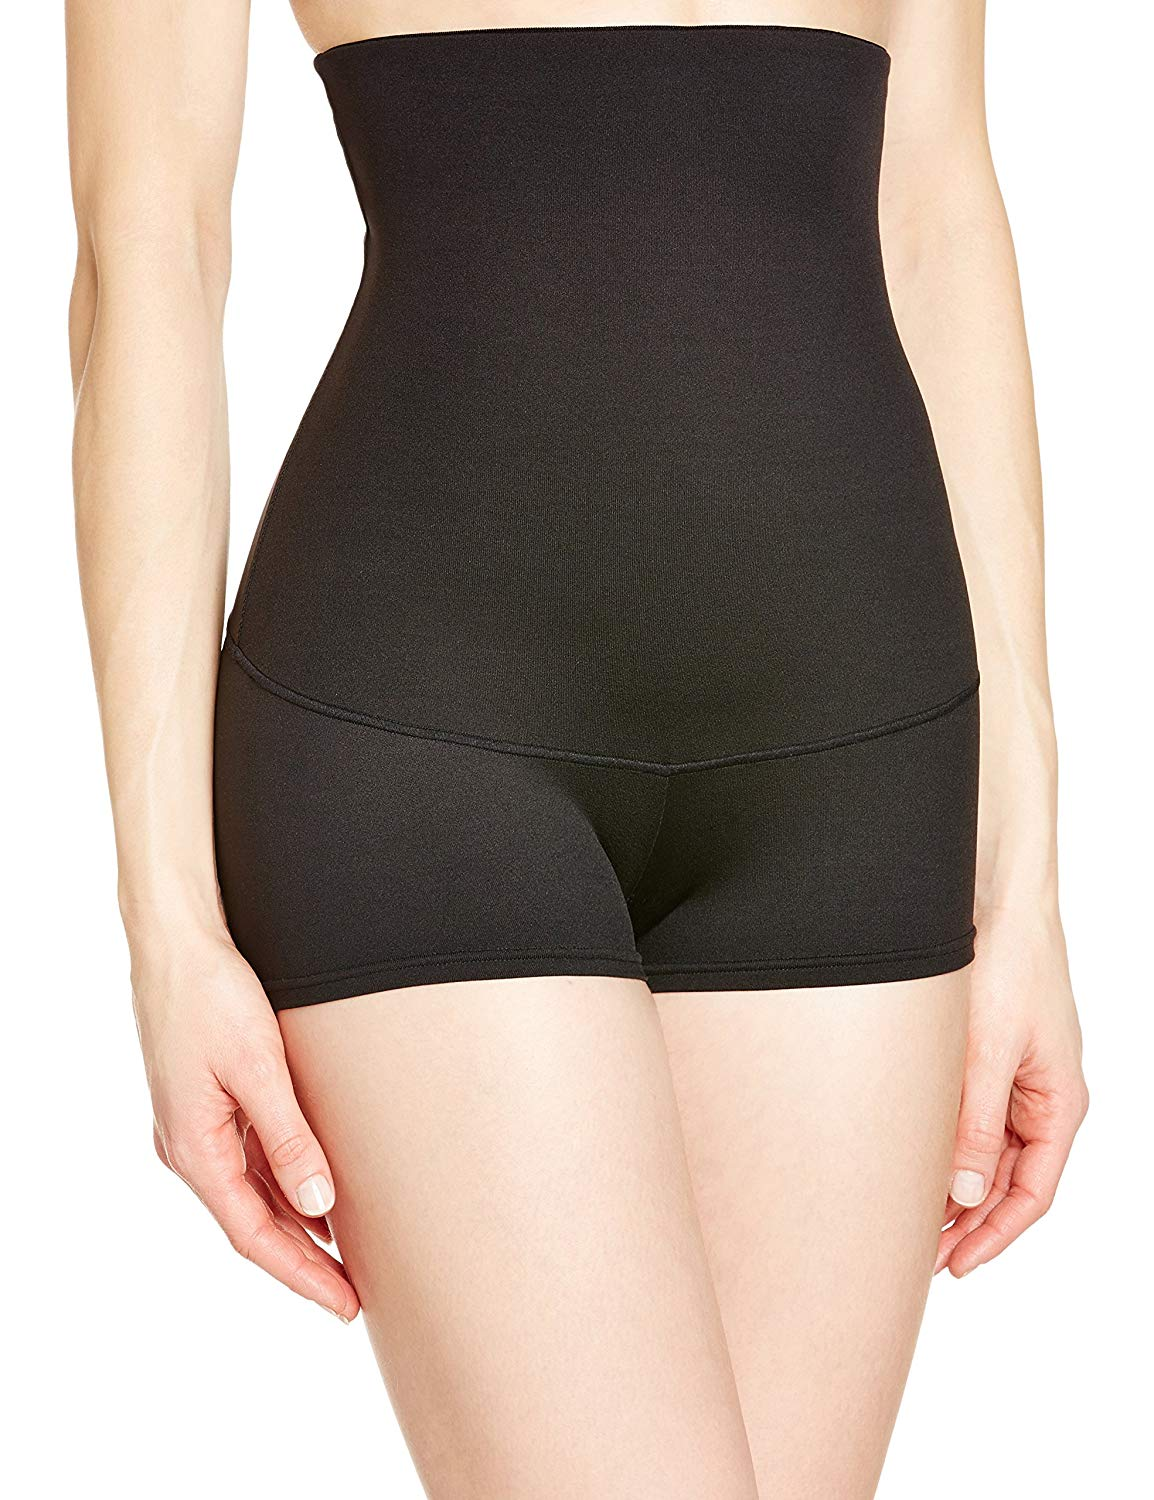 How to know what is the best shapewear to buy?